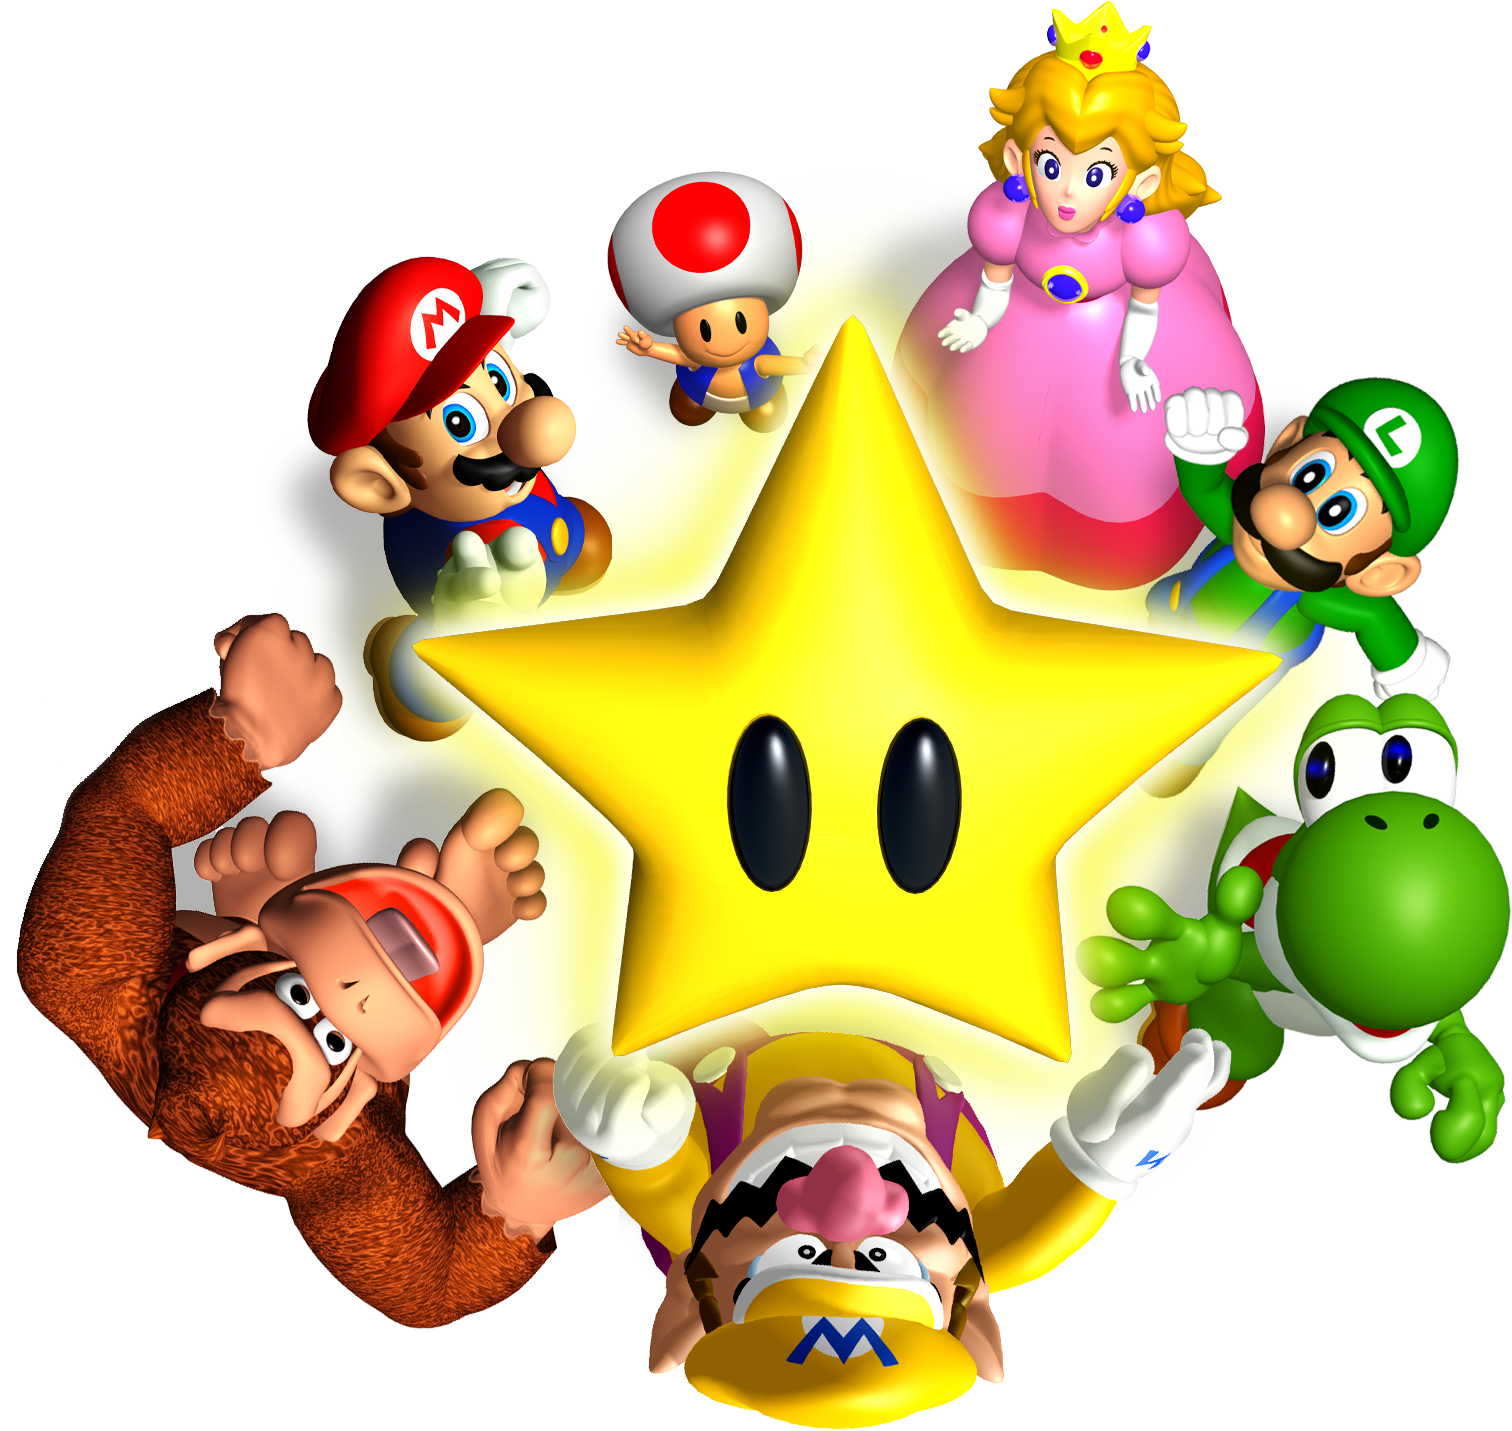 Star_group_artwork_-_mario_party